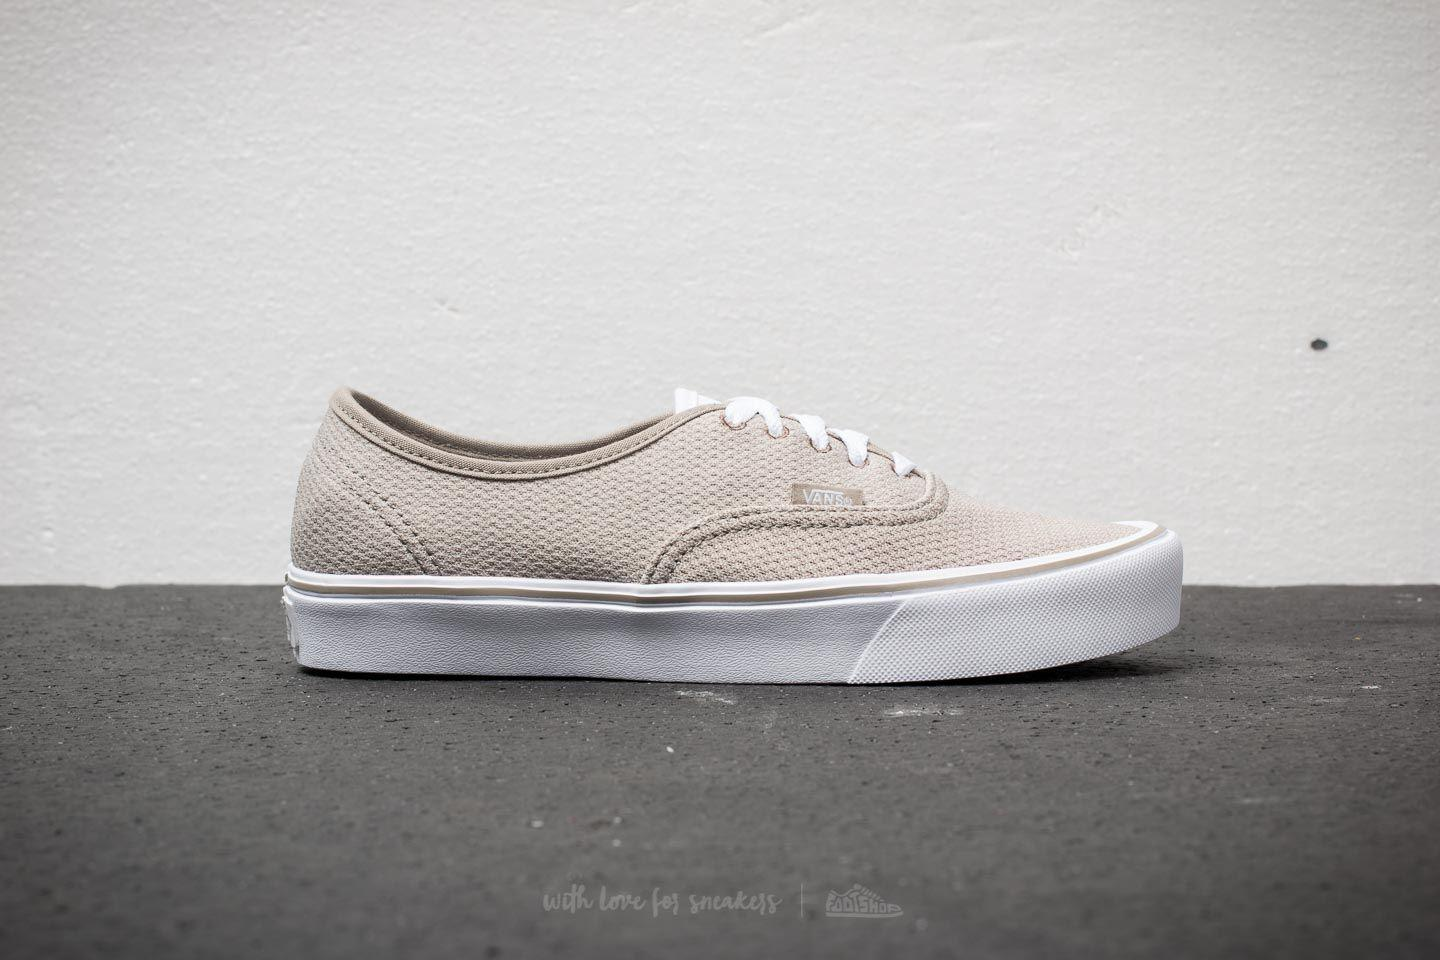 Lyst - Vans Authentic Lite (mesh) Fallen Rock  Silver in Metallic ... 2a8fbdd7a